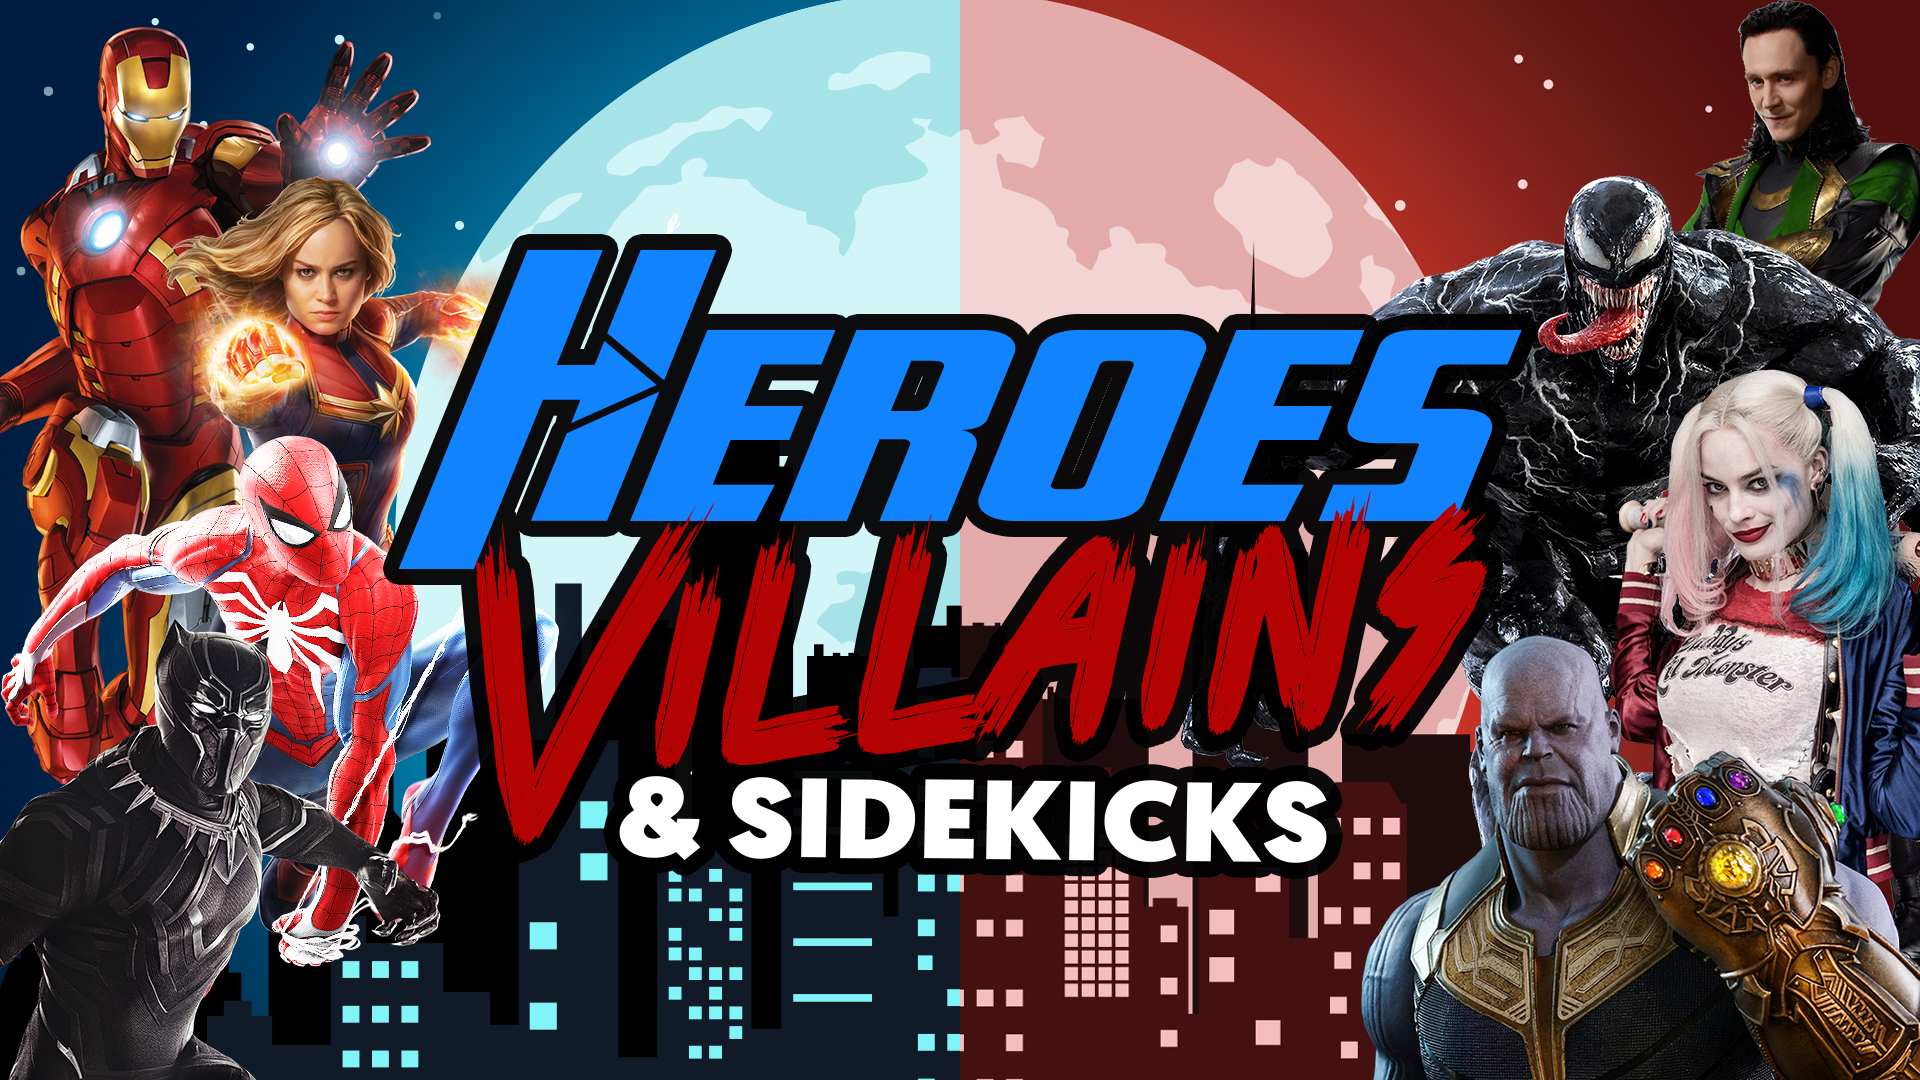 Heroes, Villains, and Sidekicks.